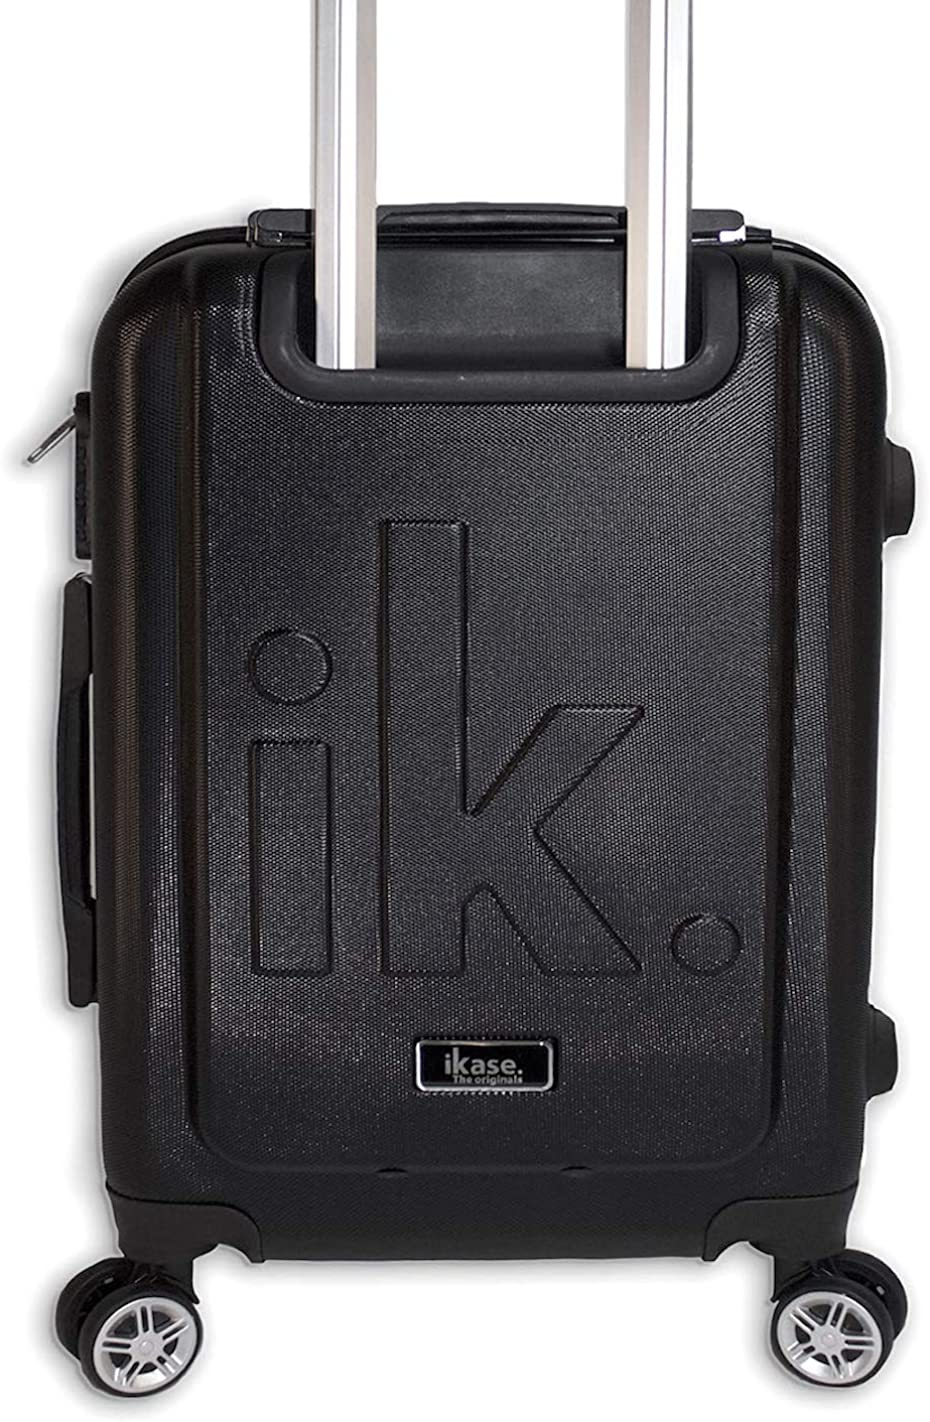 Ikase Hardside Spinner Luggage Big Ben post card by Piddix